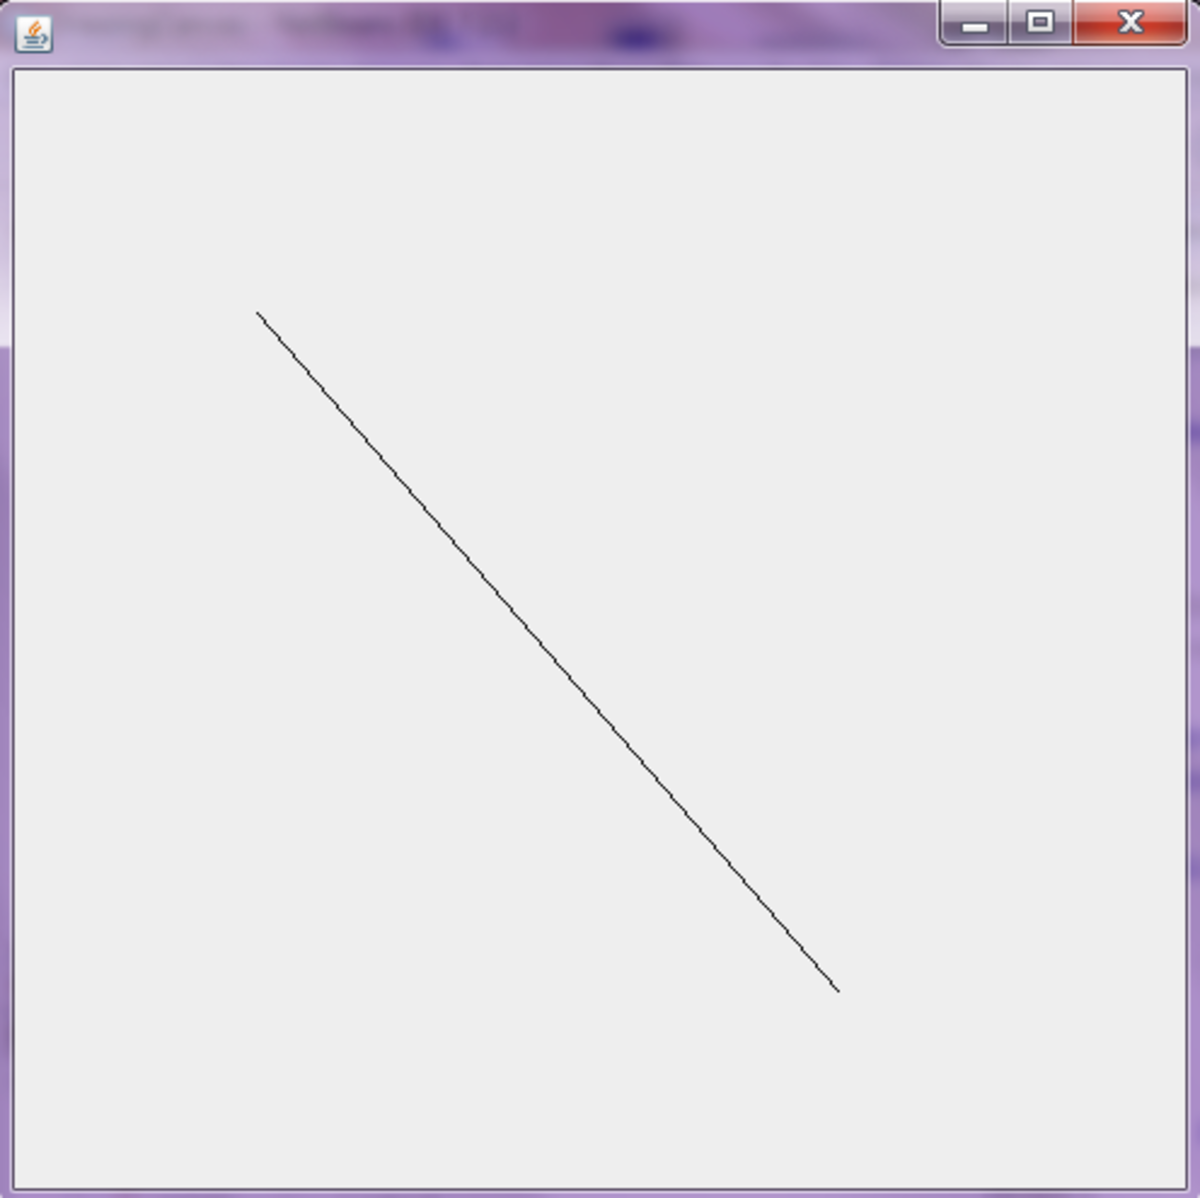 Drawing Lines In Jframe : Programming basic d shapes in java using graphics and